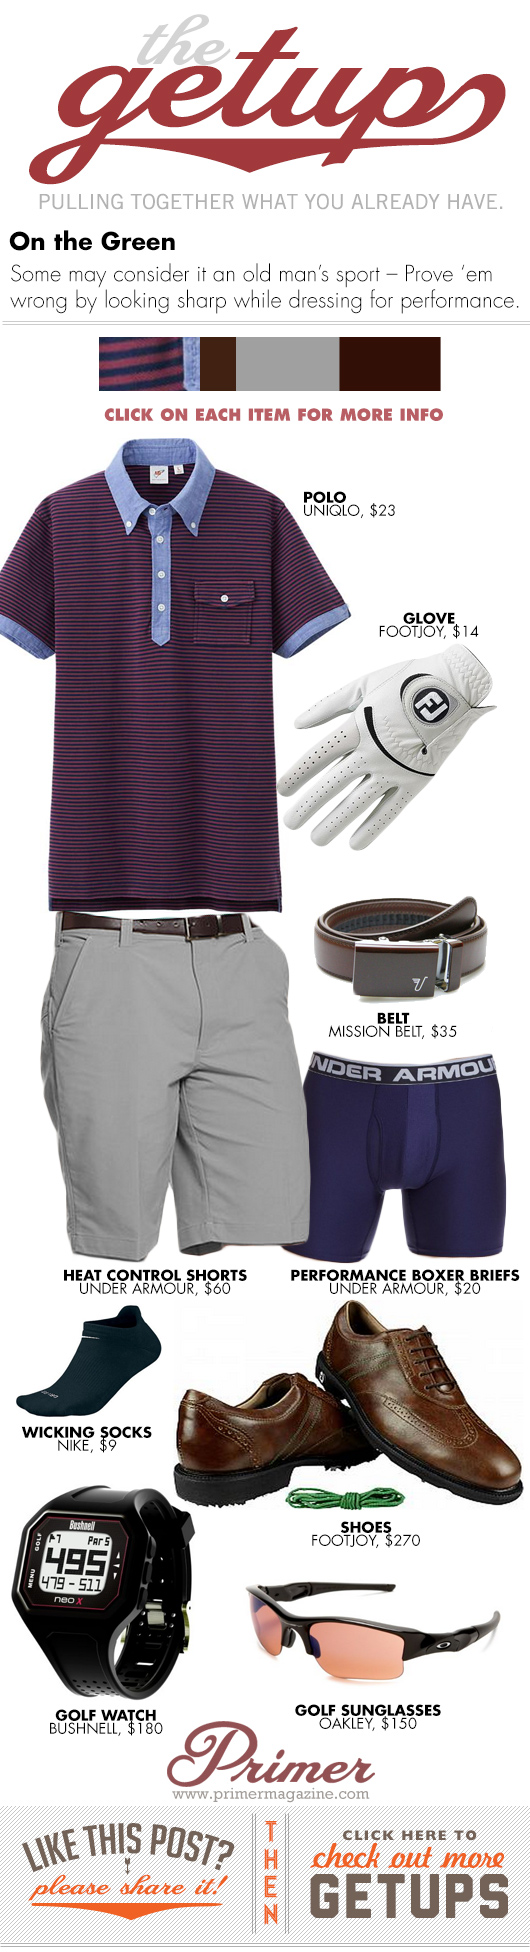 Getup On the Green - polo golf glove, gray pants, golf shoes